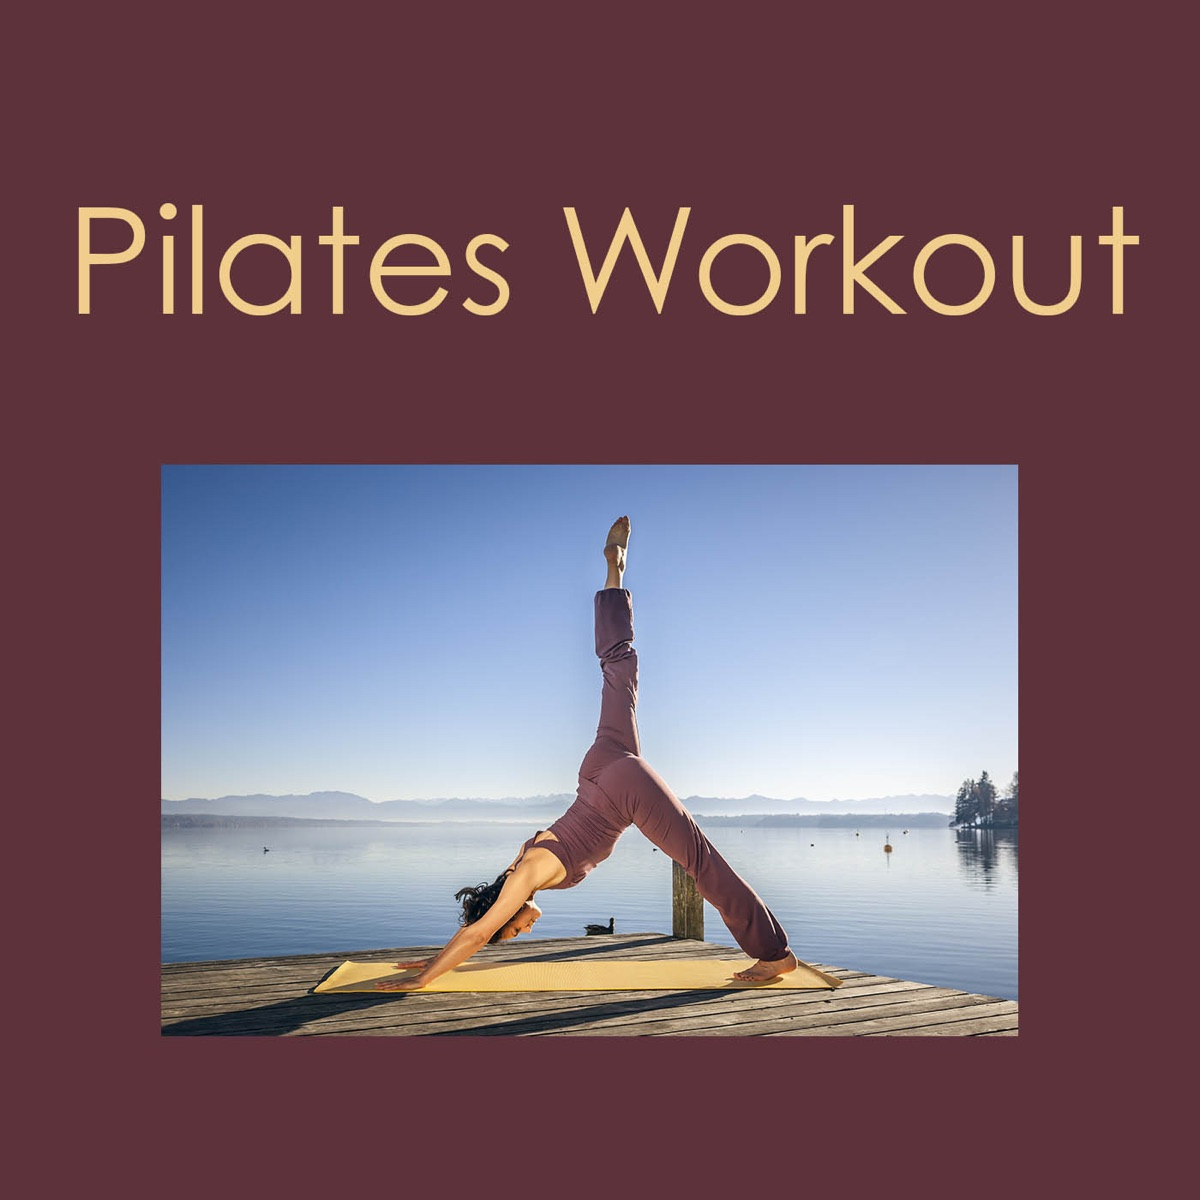 Pilates Workout: Lounge Music 4 Pilates Workout & Yoga, Warm